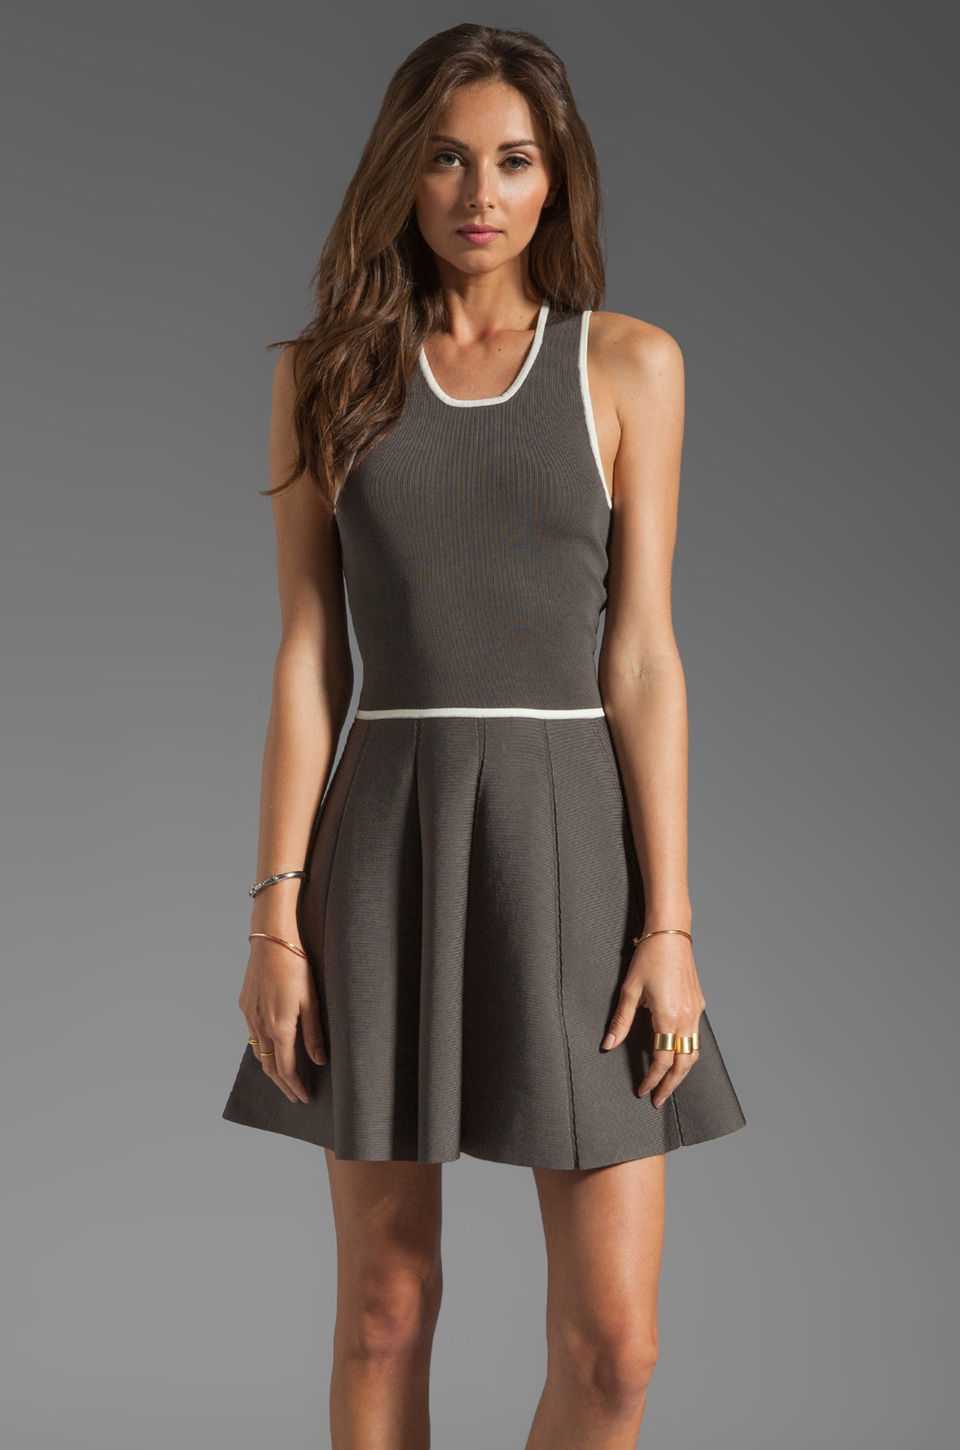 Parker Darla Knit Dress in Dusk Combo